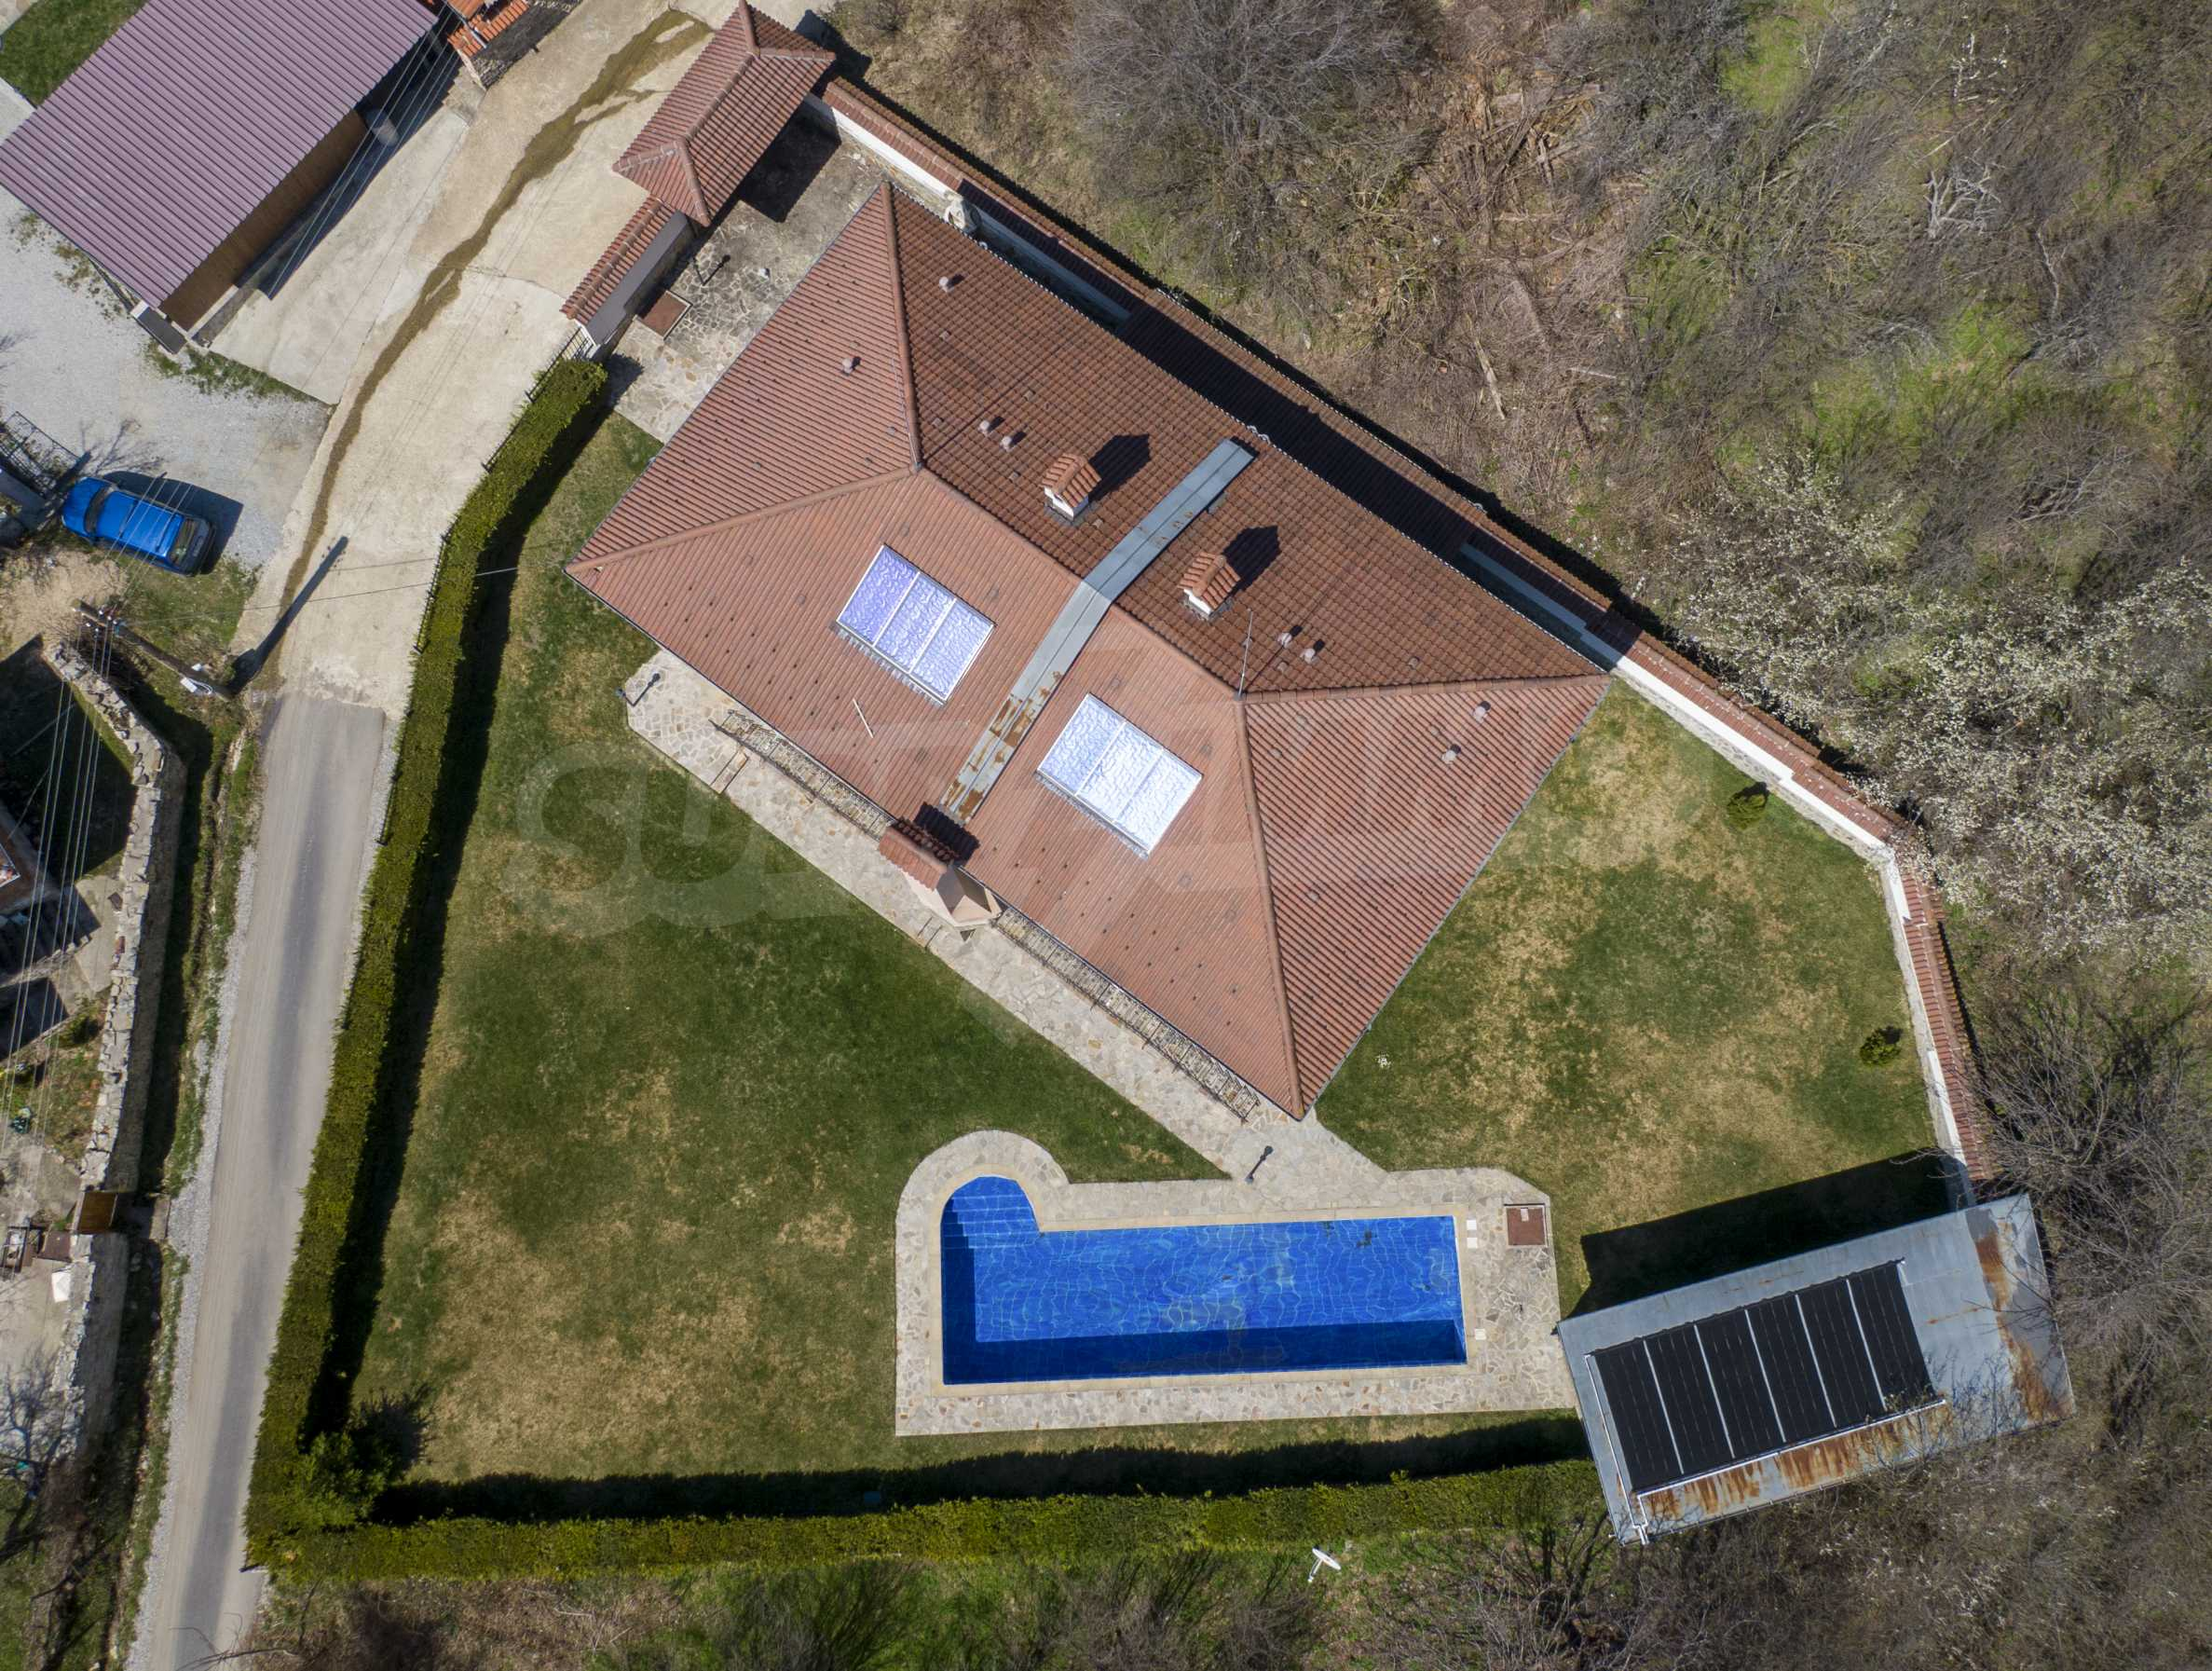 Two houses with swimming pool located close to a lake 51